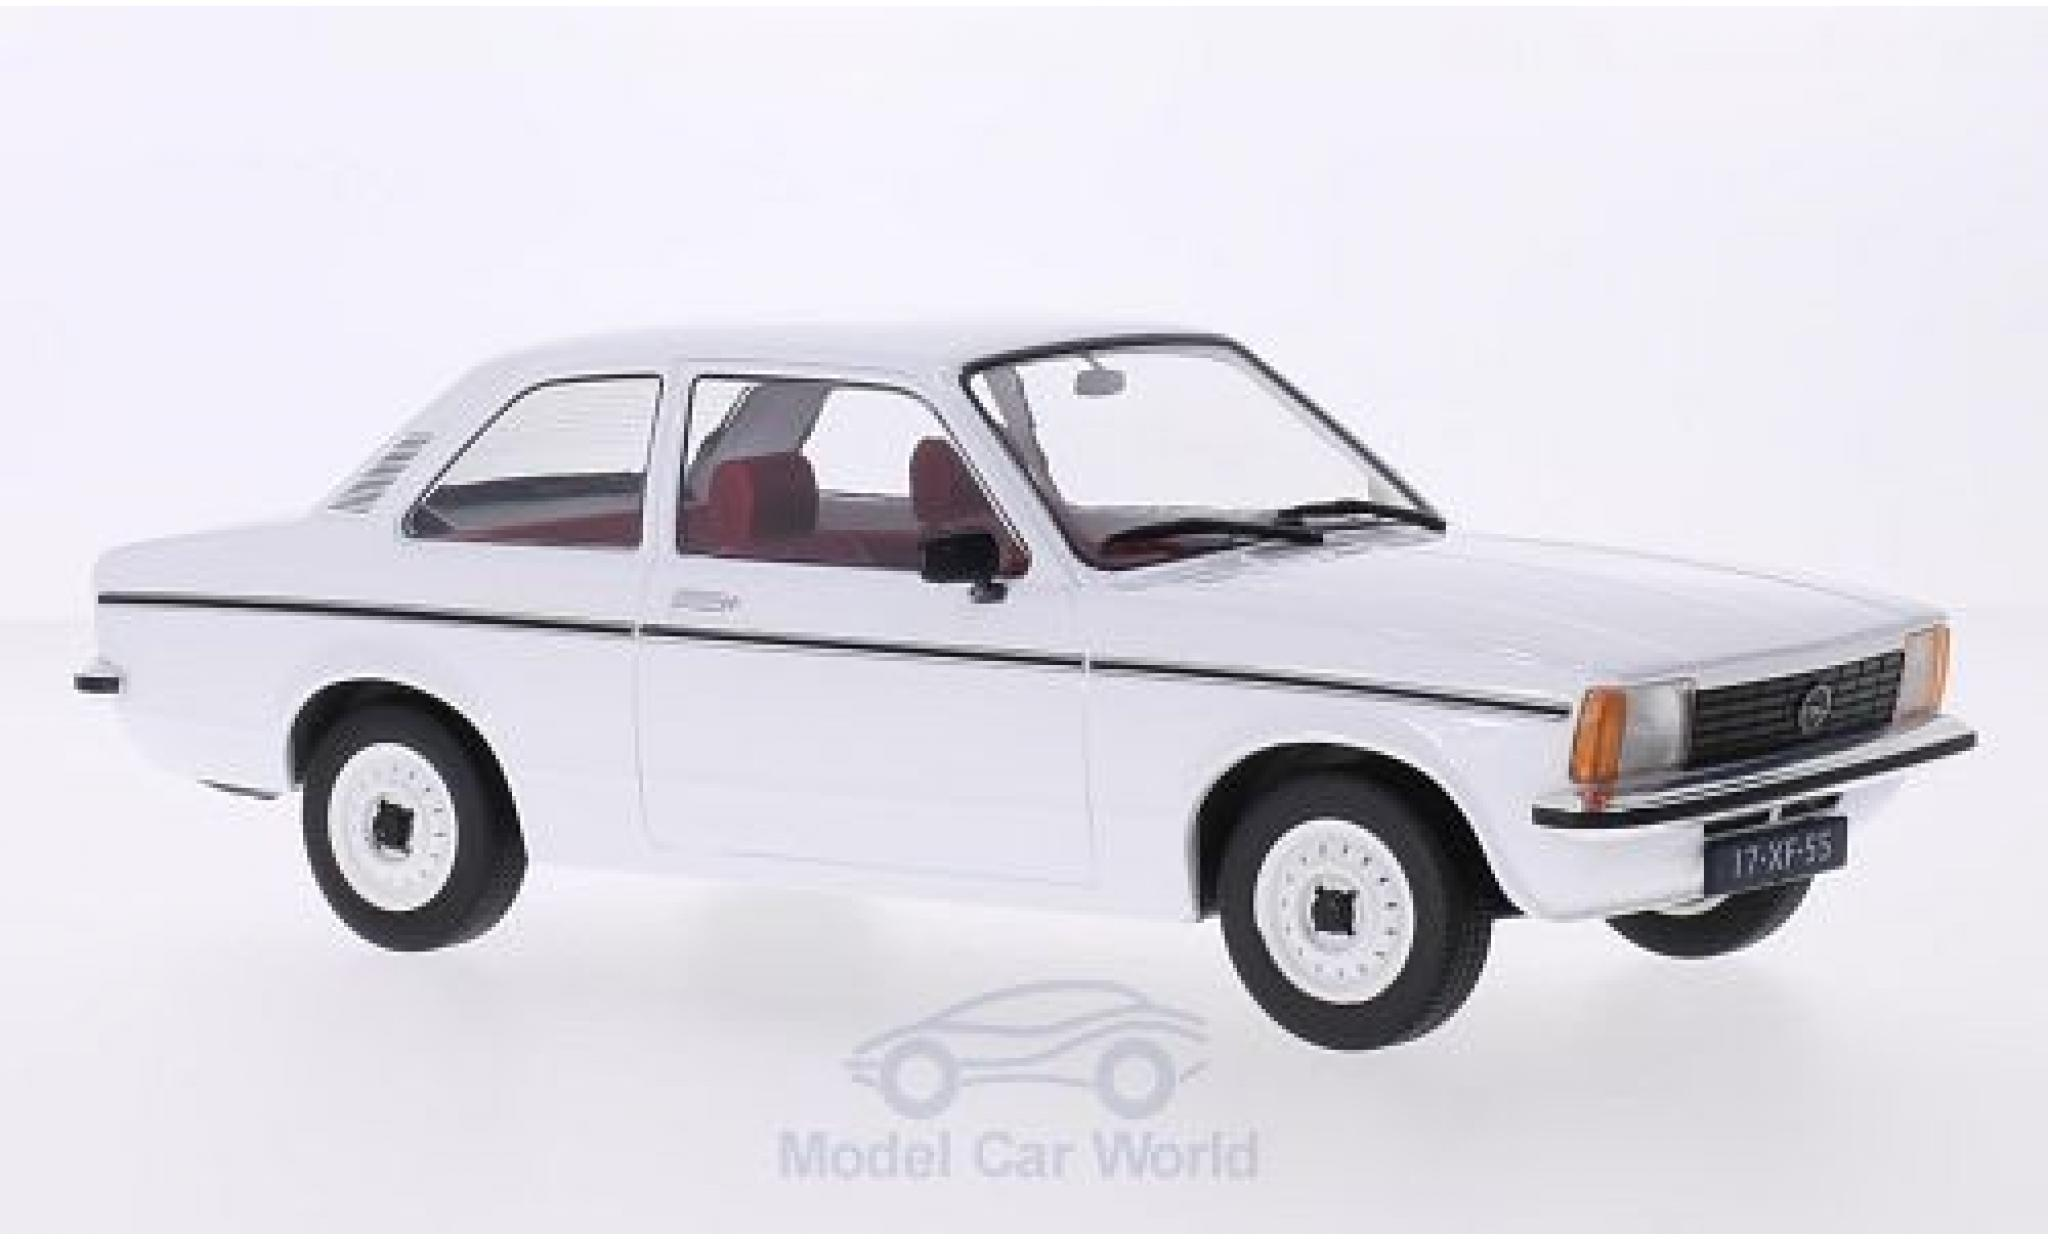 Opel Kadett E 1/18 Triple 9 Collection C Limousine blanche 2-Türer